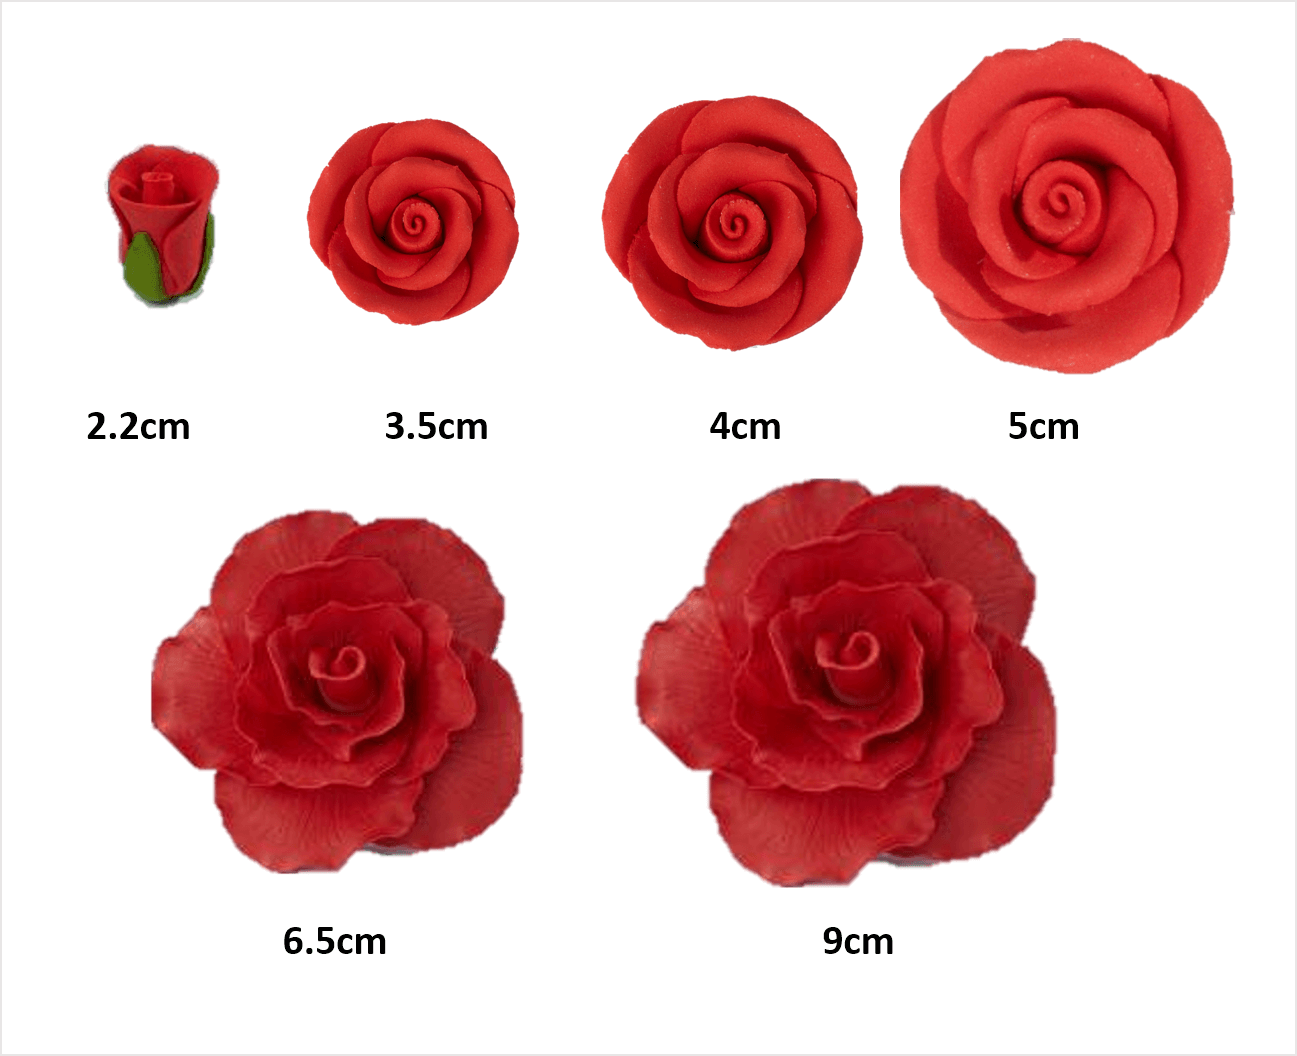 rose head sizes flower icing cake decorations - Tamworth West Midlands